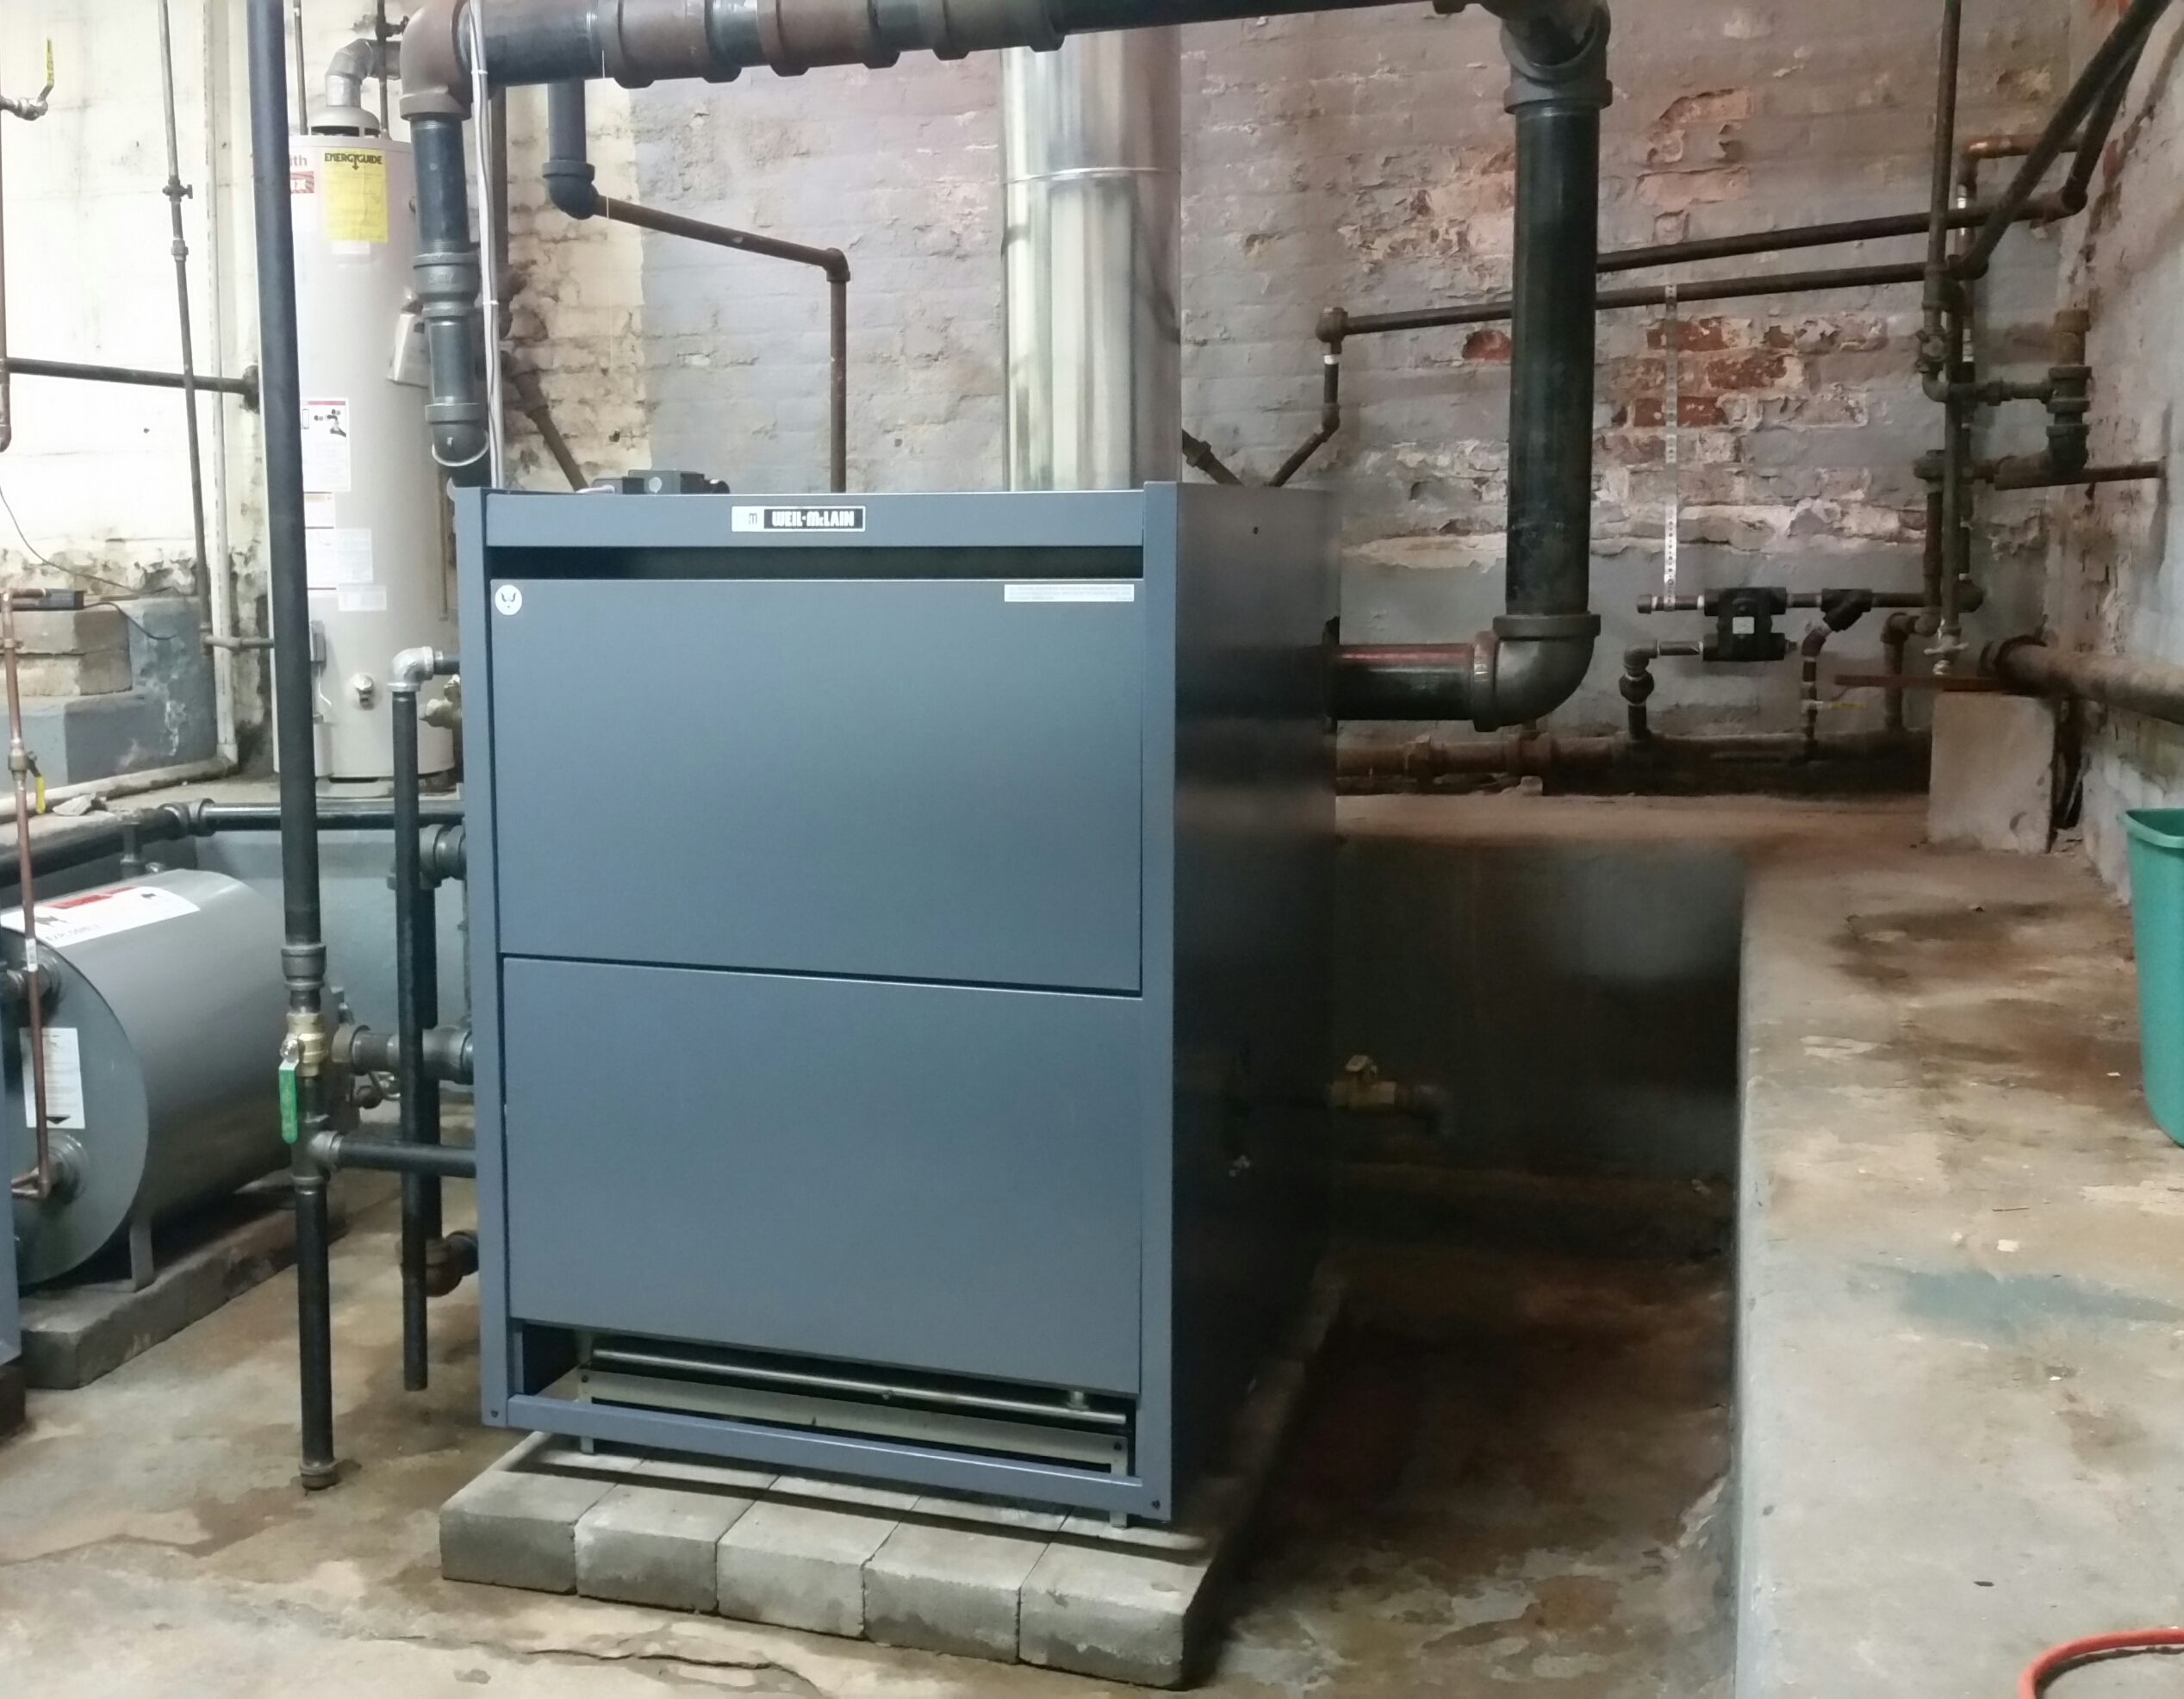 Weil-McLain steam boiler replacement — Heating Help: The Wall